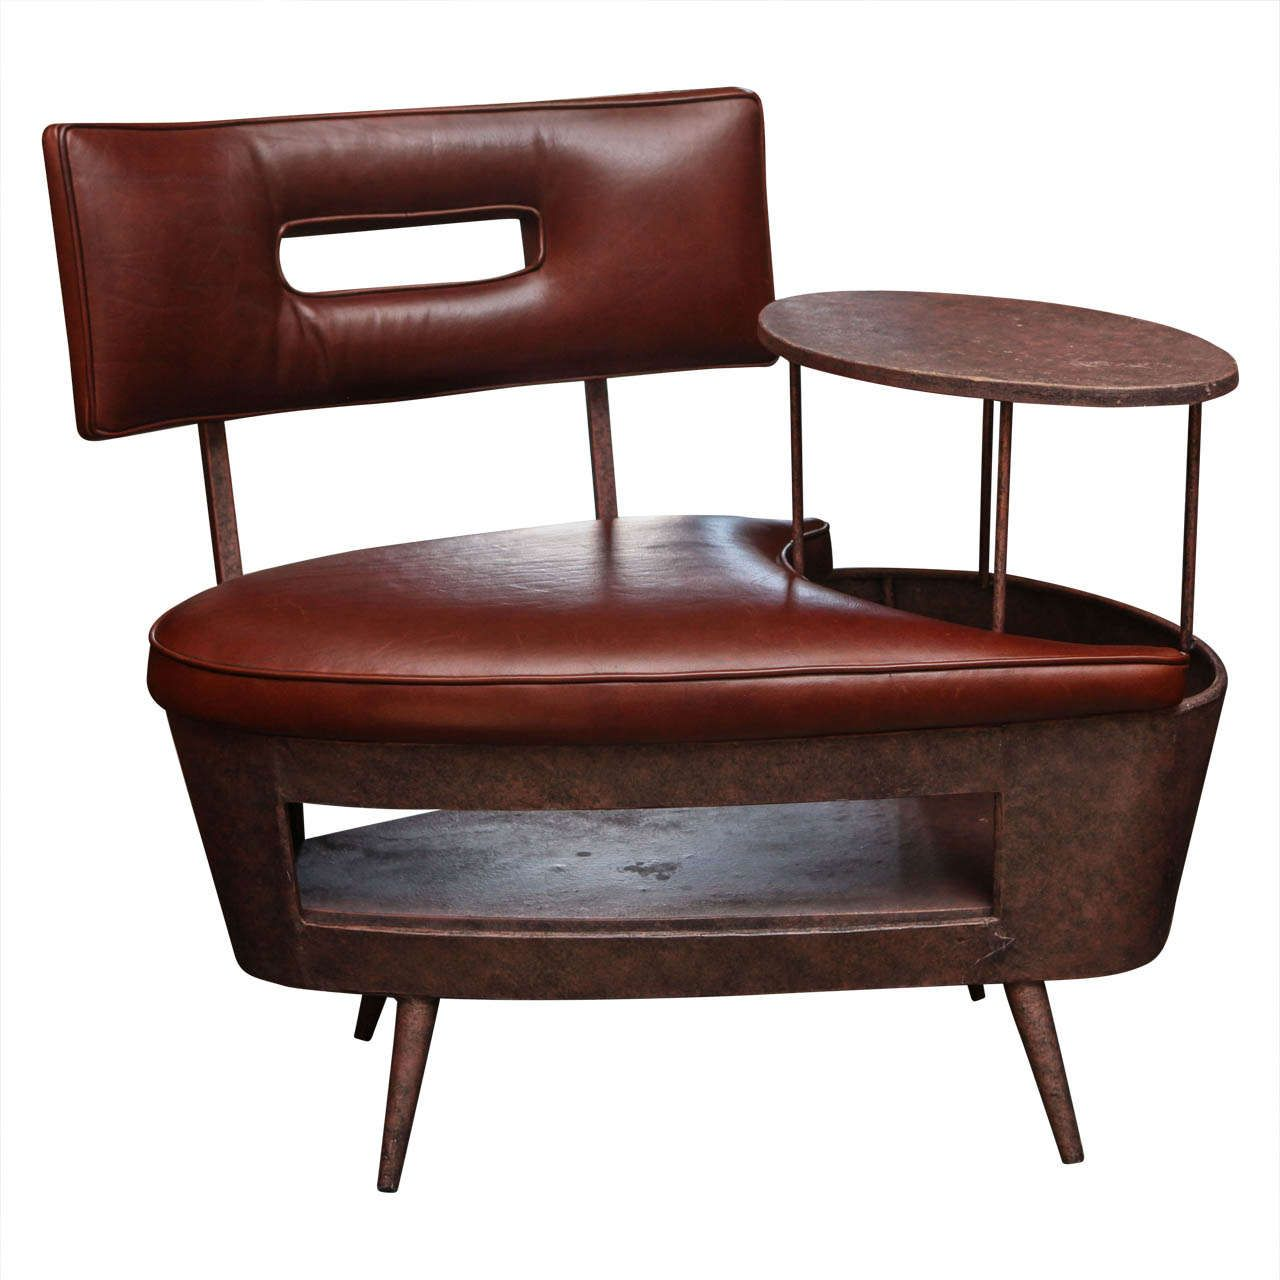 Unusual Chair With Table Combo 1stdibs Com Furniture Modern Office Chair Mid Century Office Chair